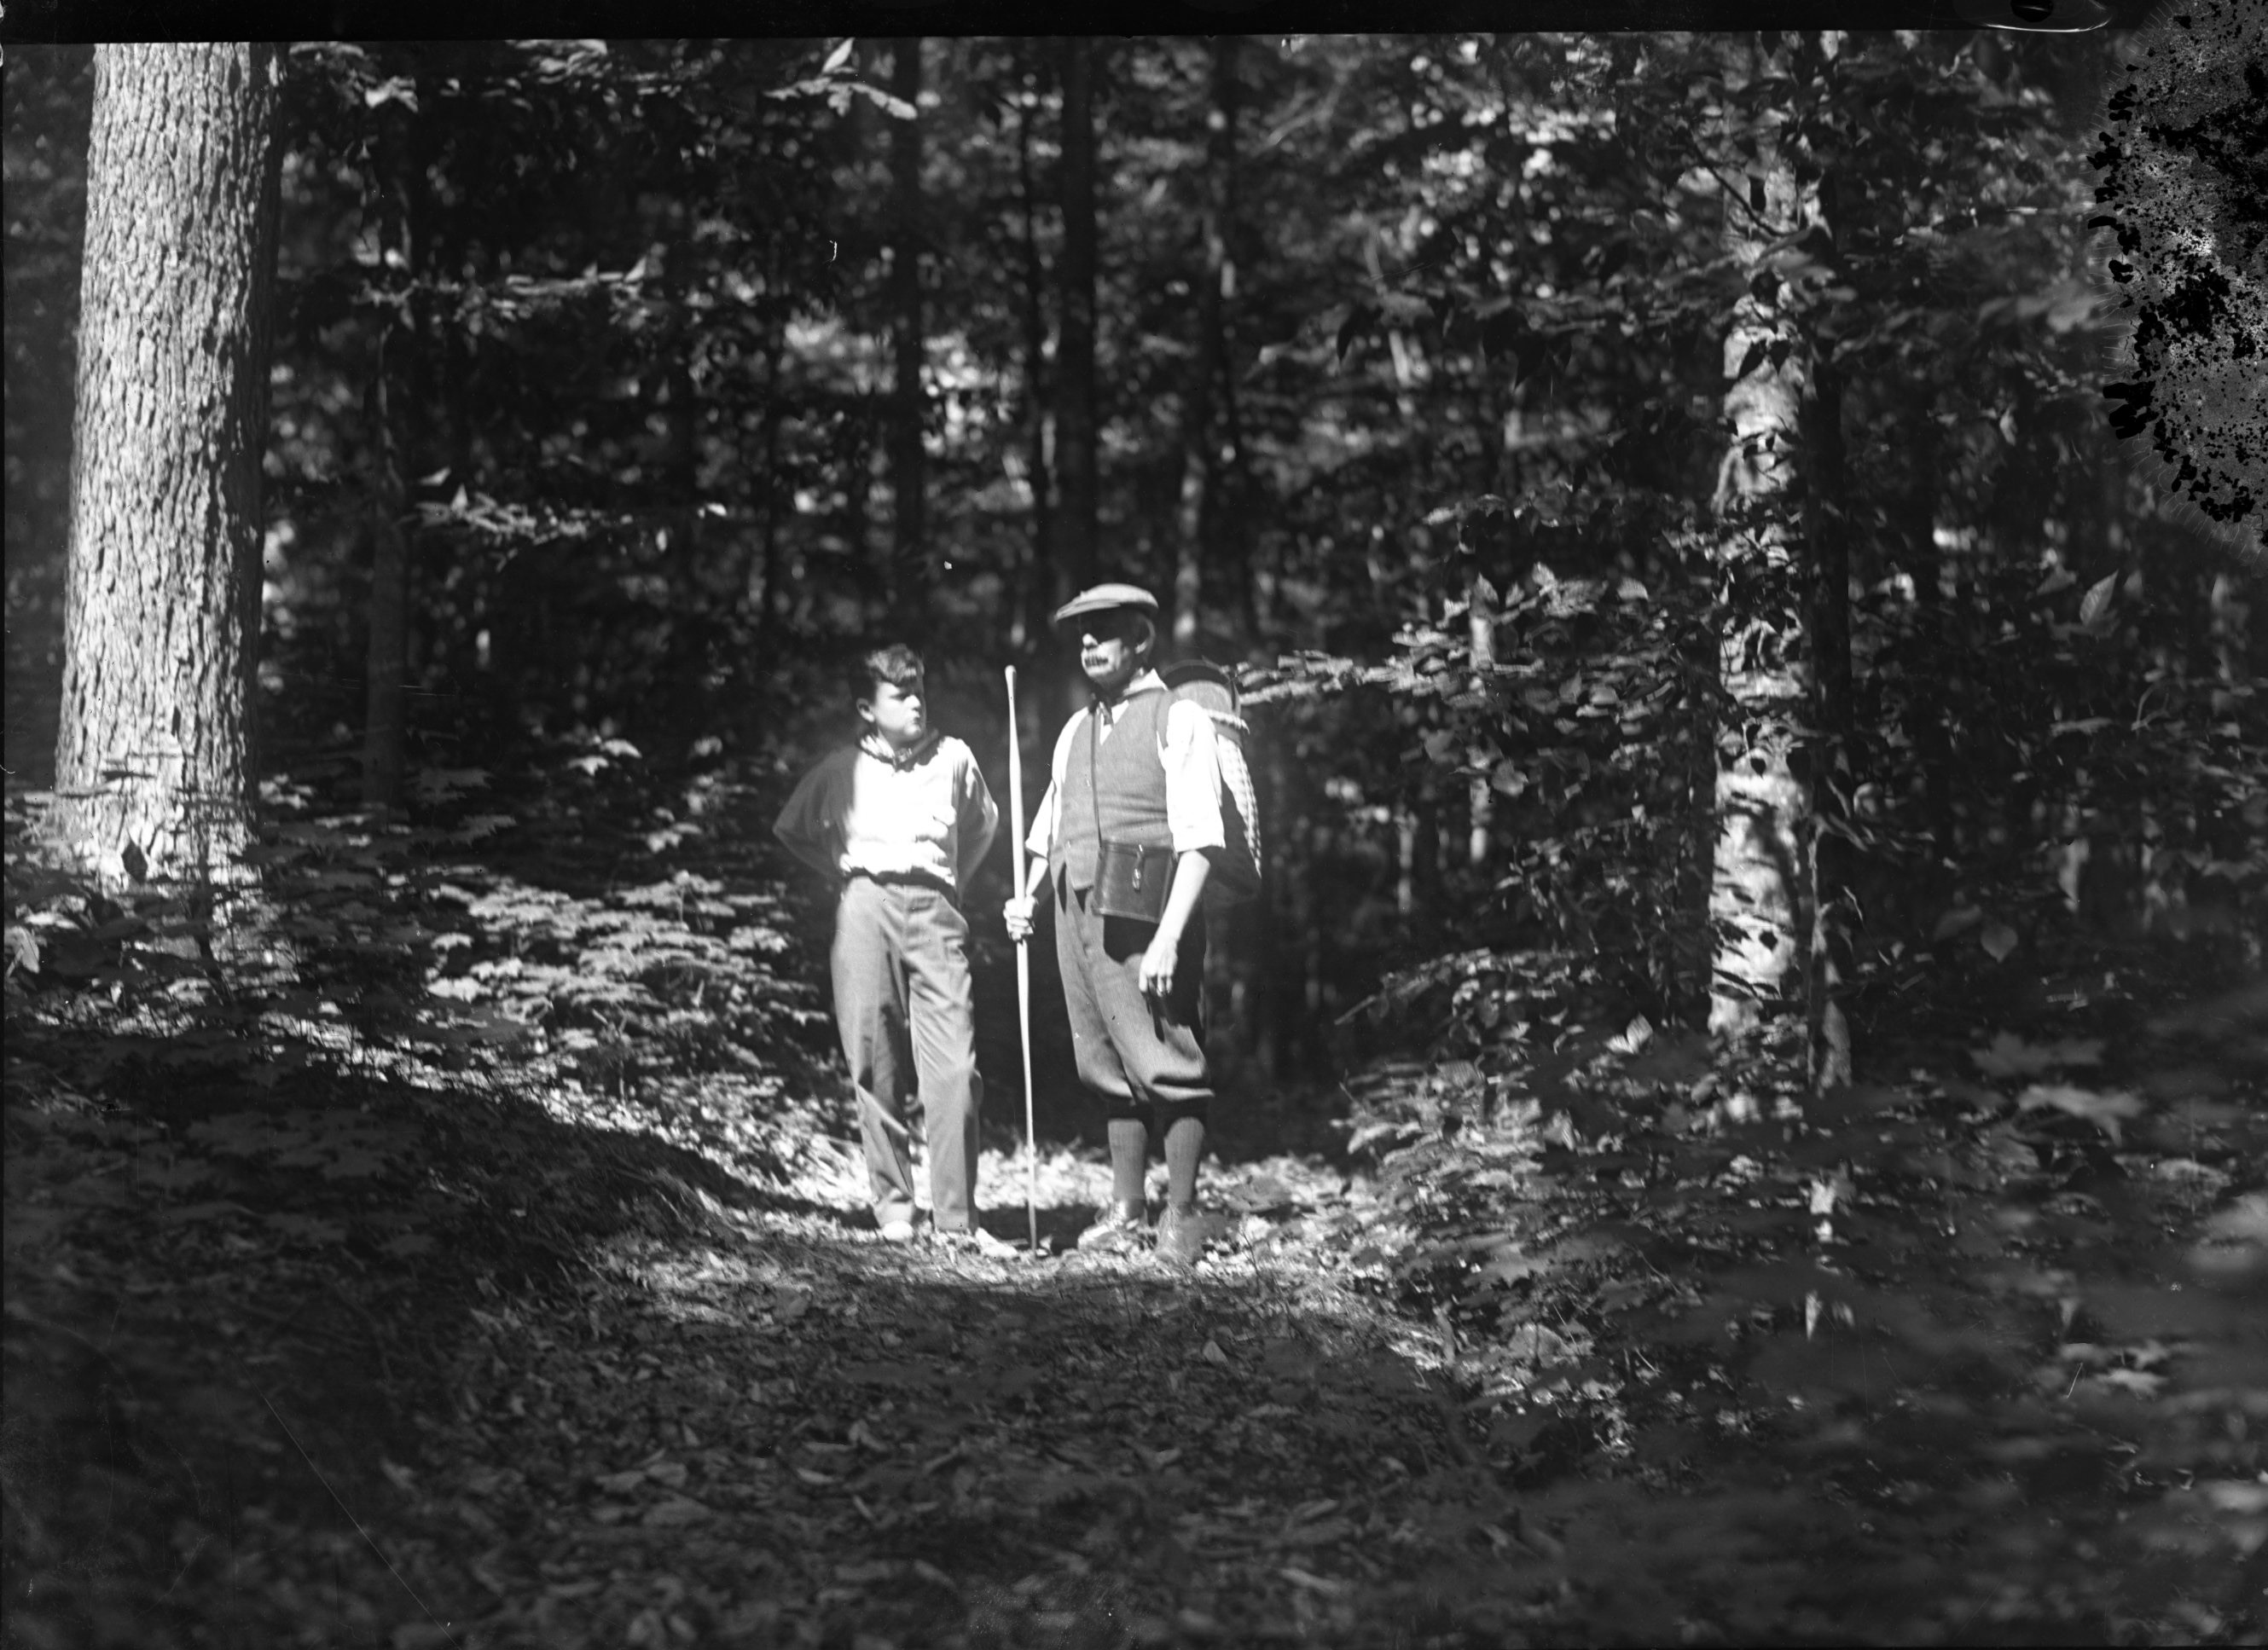 man-and-boy-hiking-in-summer-5x7-4880